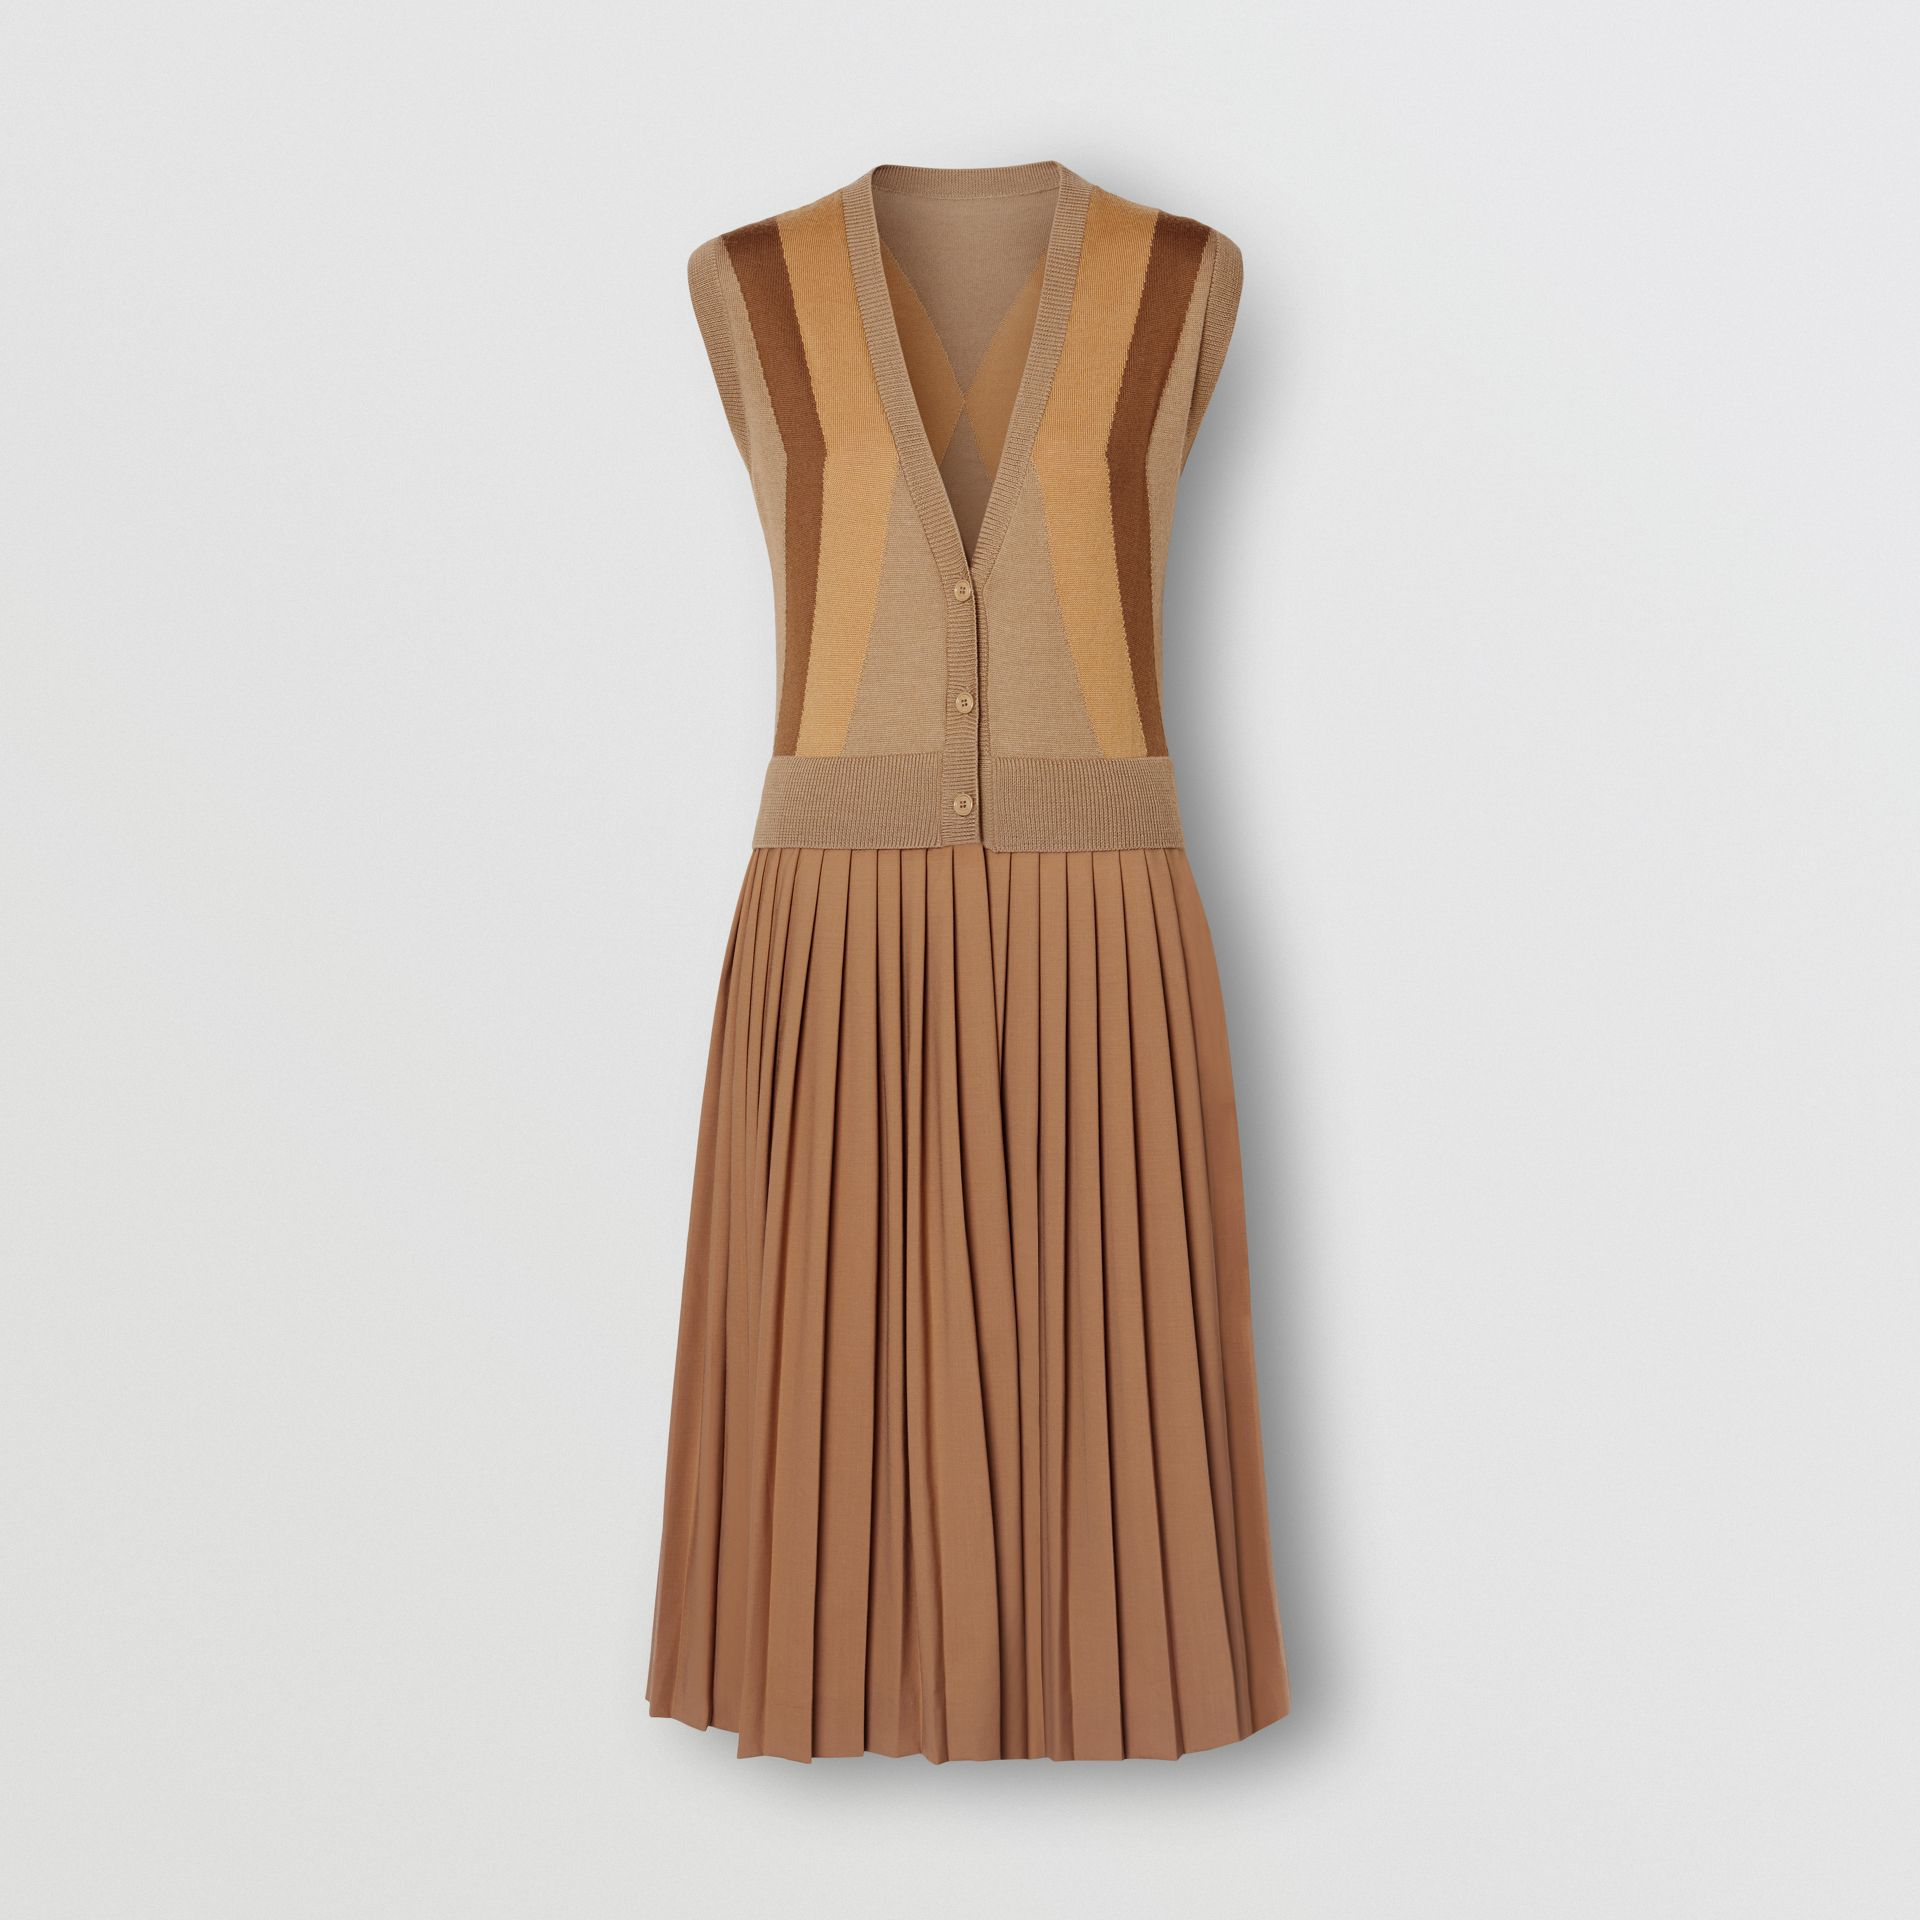 Sleeveless Knitted Wool V-neck Dress in Acorn - Women | Burberry - gallery image 3